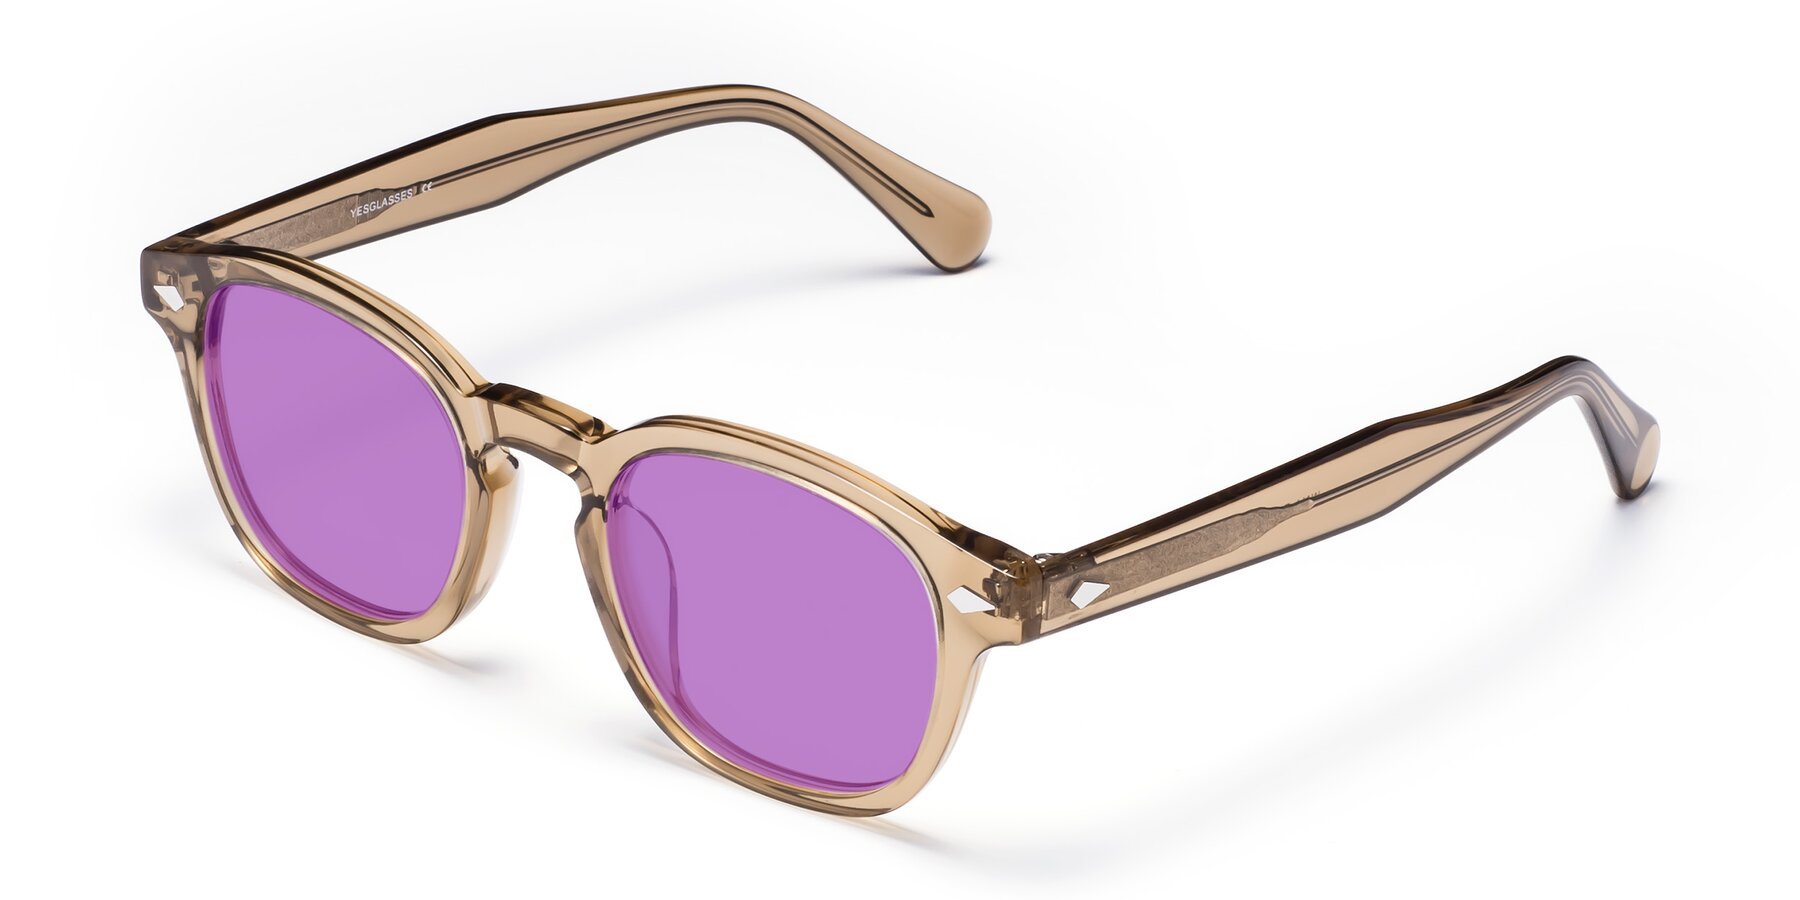 Angle of WALL-E in Champagne with Medium Purple Tinted Lenses